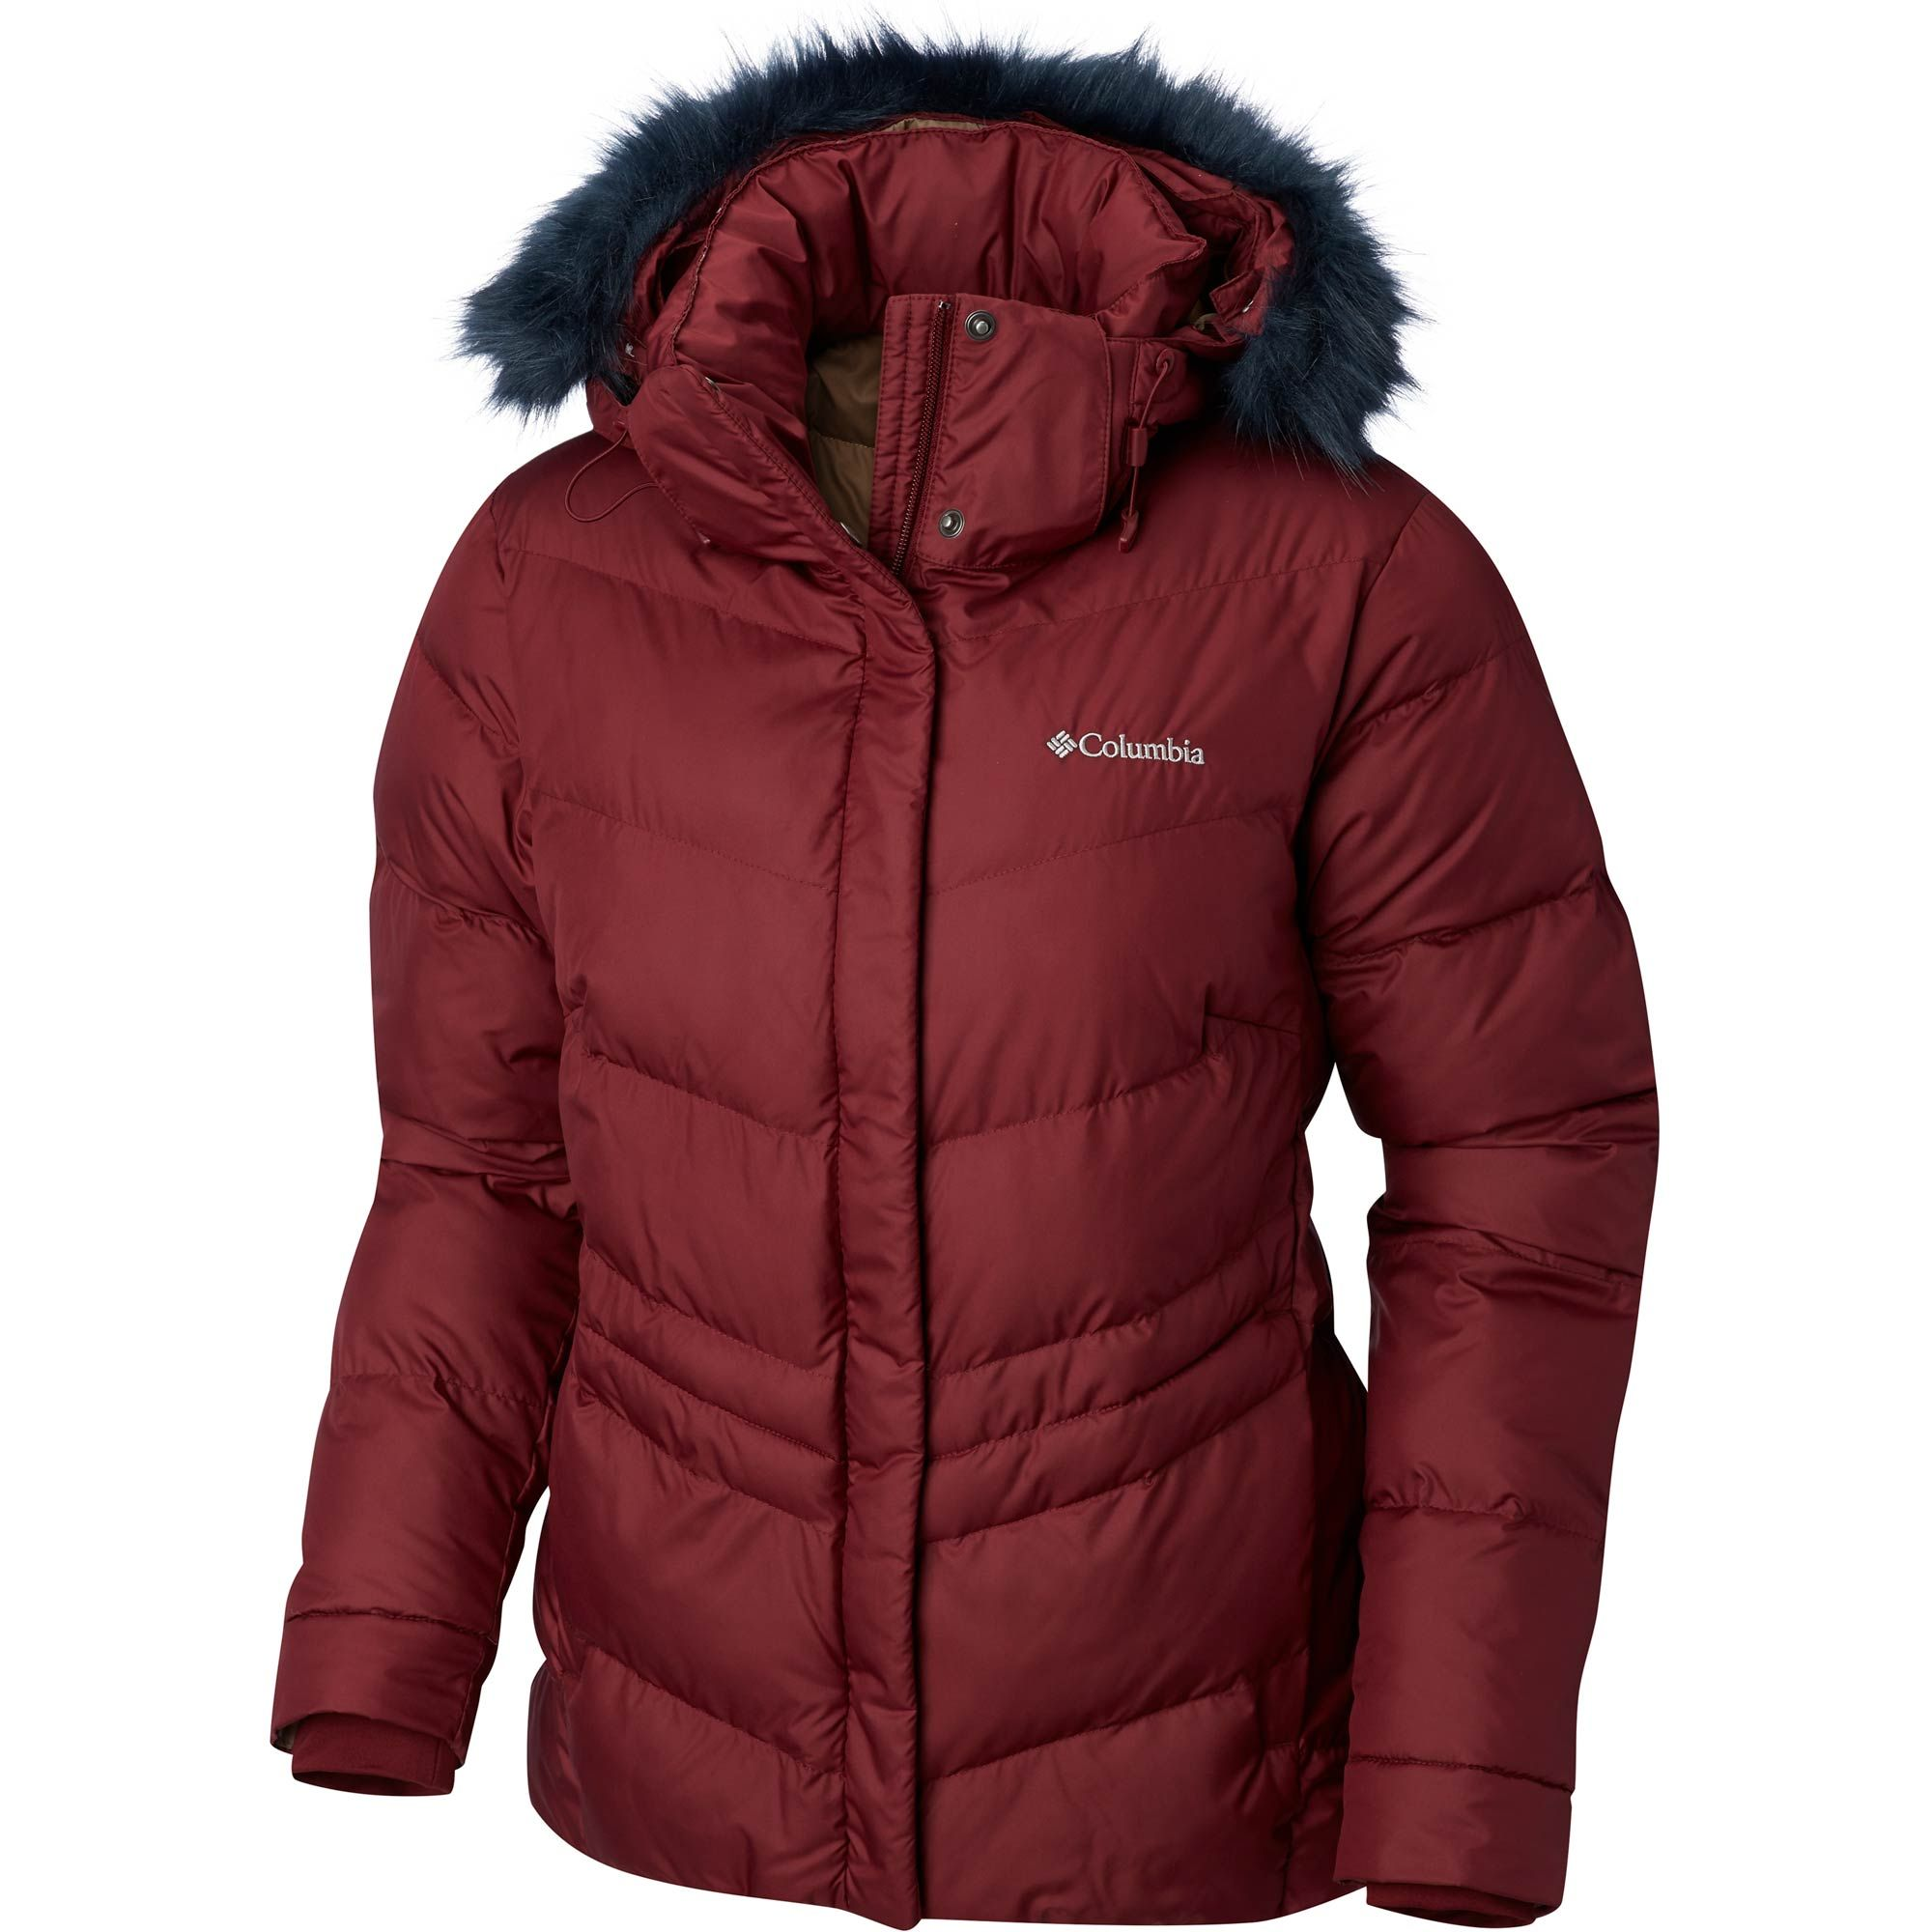 Crafted Of A Tough Water Resistant Storm Lite Dp Shell And Insulated With Snug Synthetic Down This Jewel Of A Columbia Jacket Womens Jackets Insulated Jackets